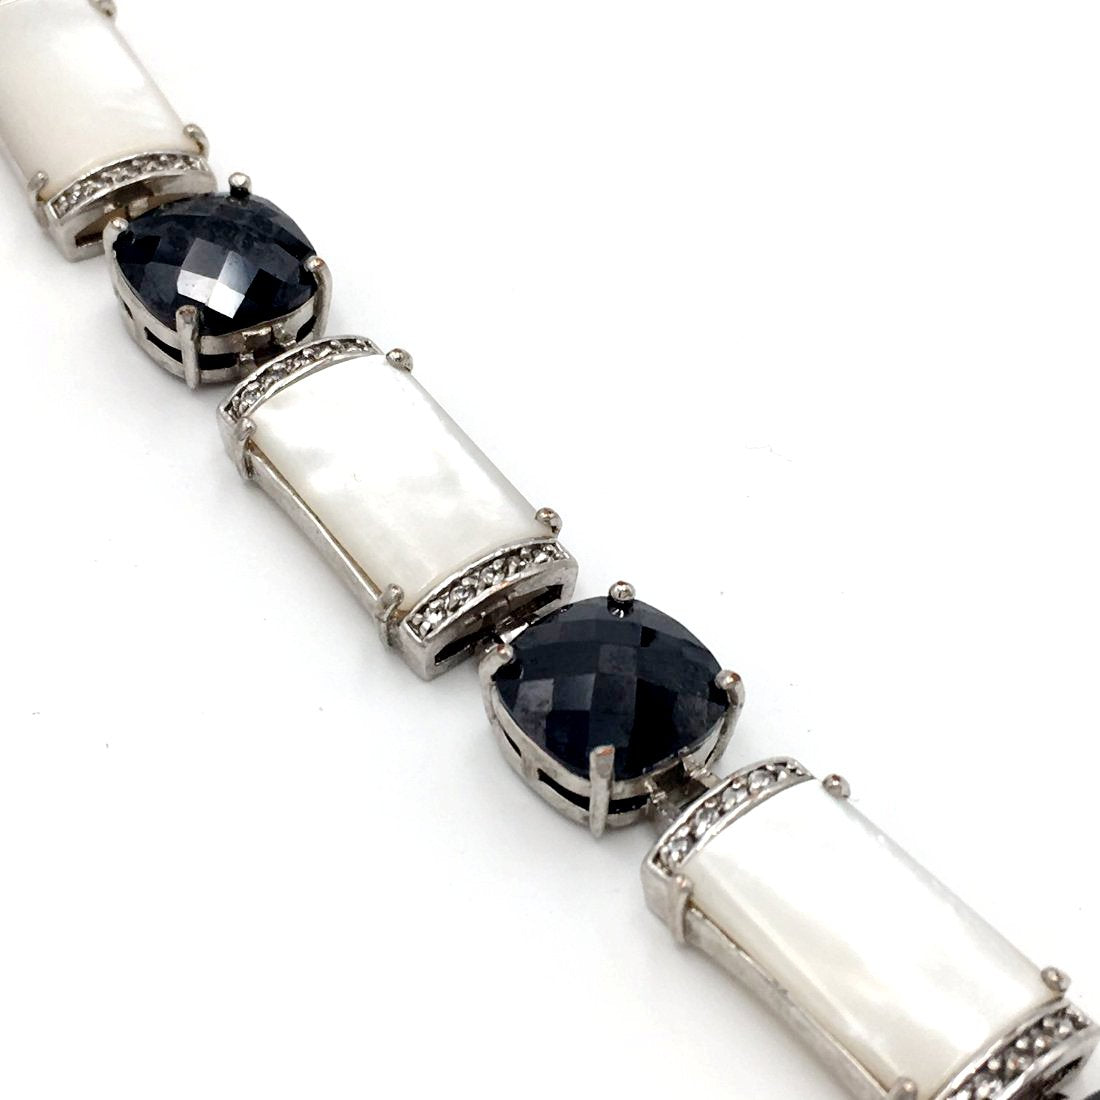 Art-deco-style vintage 1950's mother of pearl rhinestone bracelet.